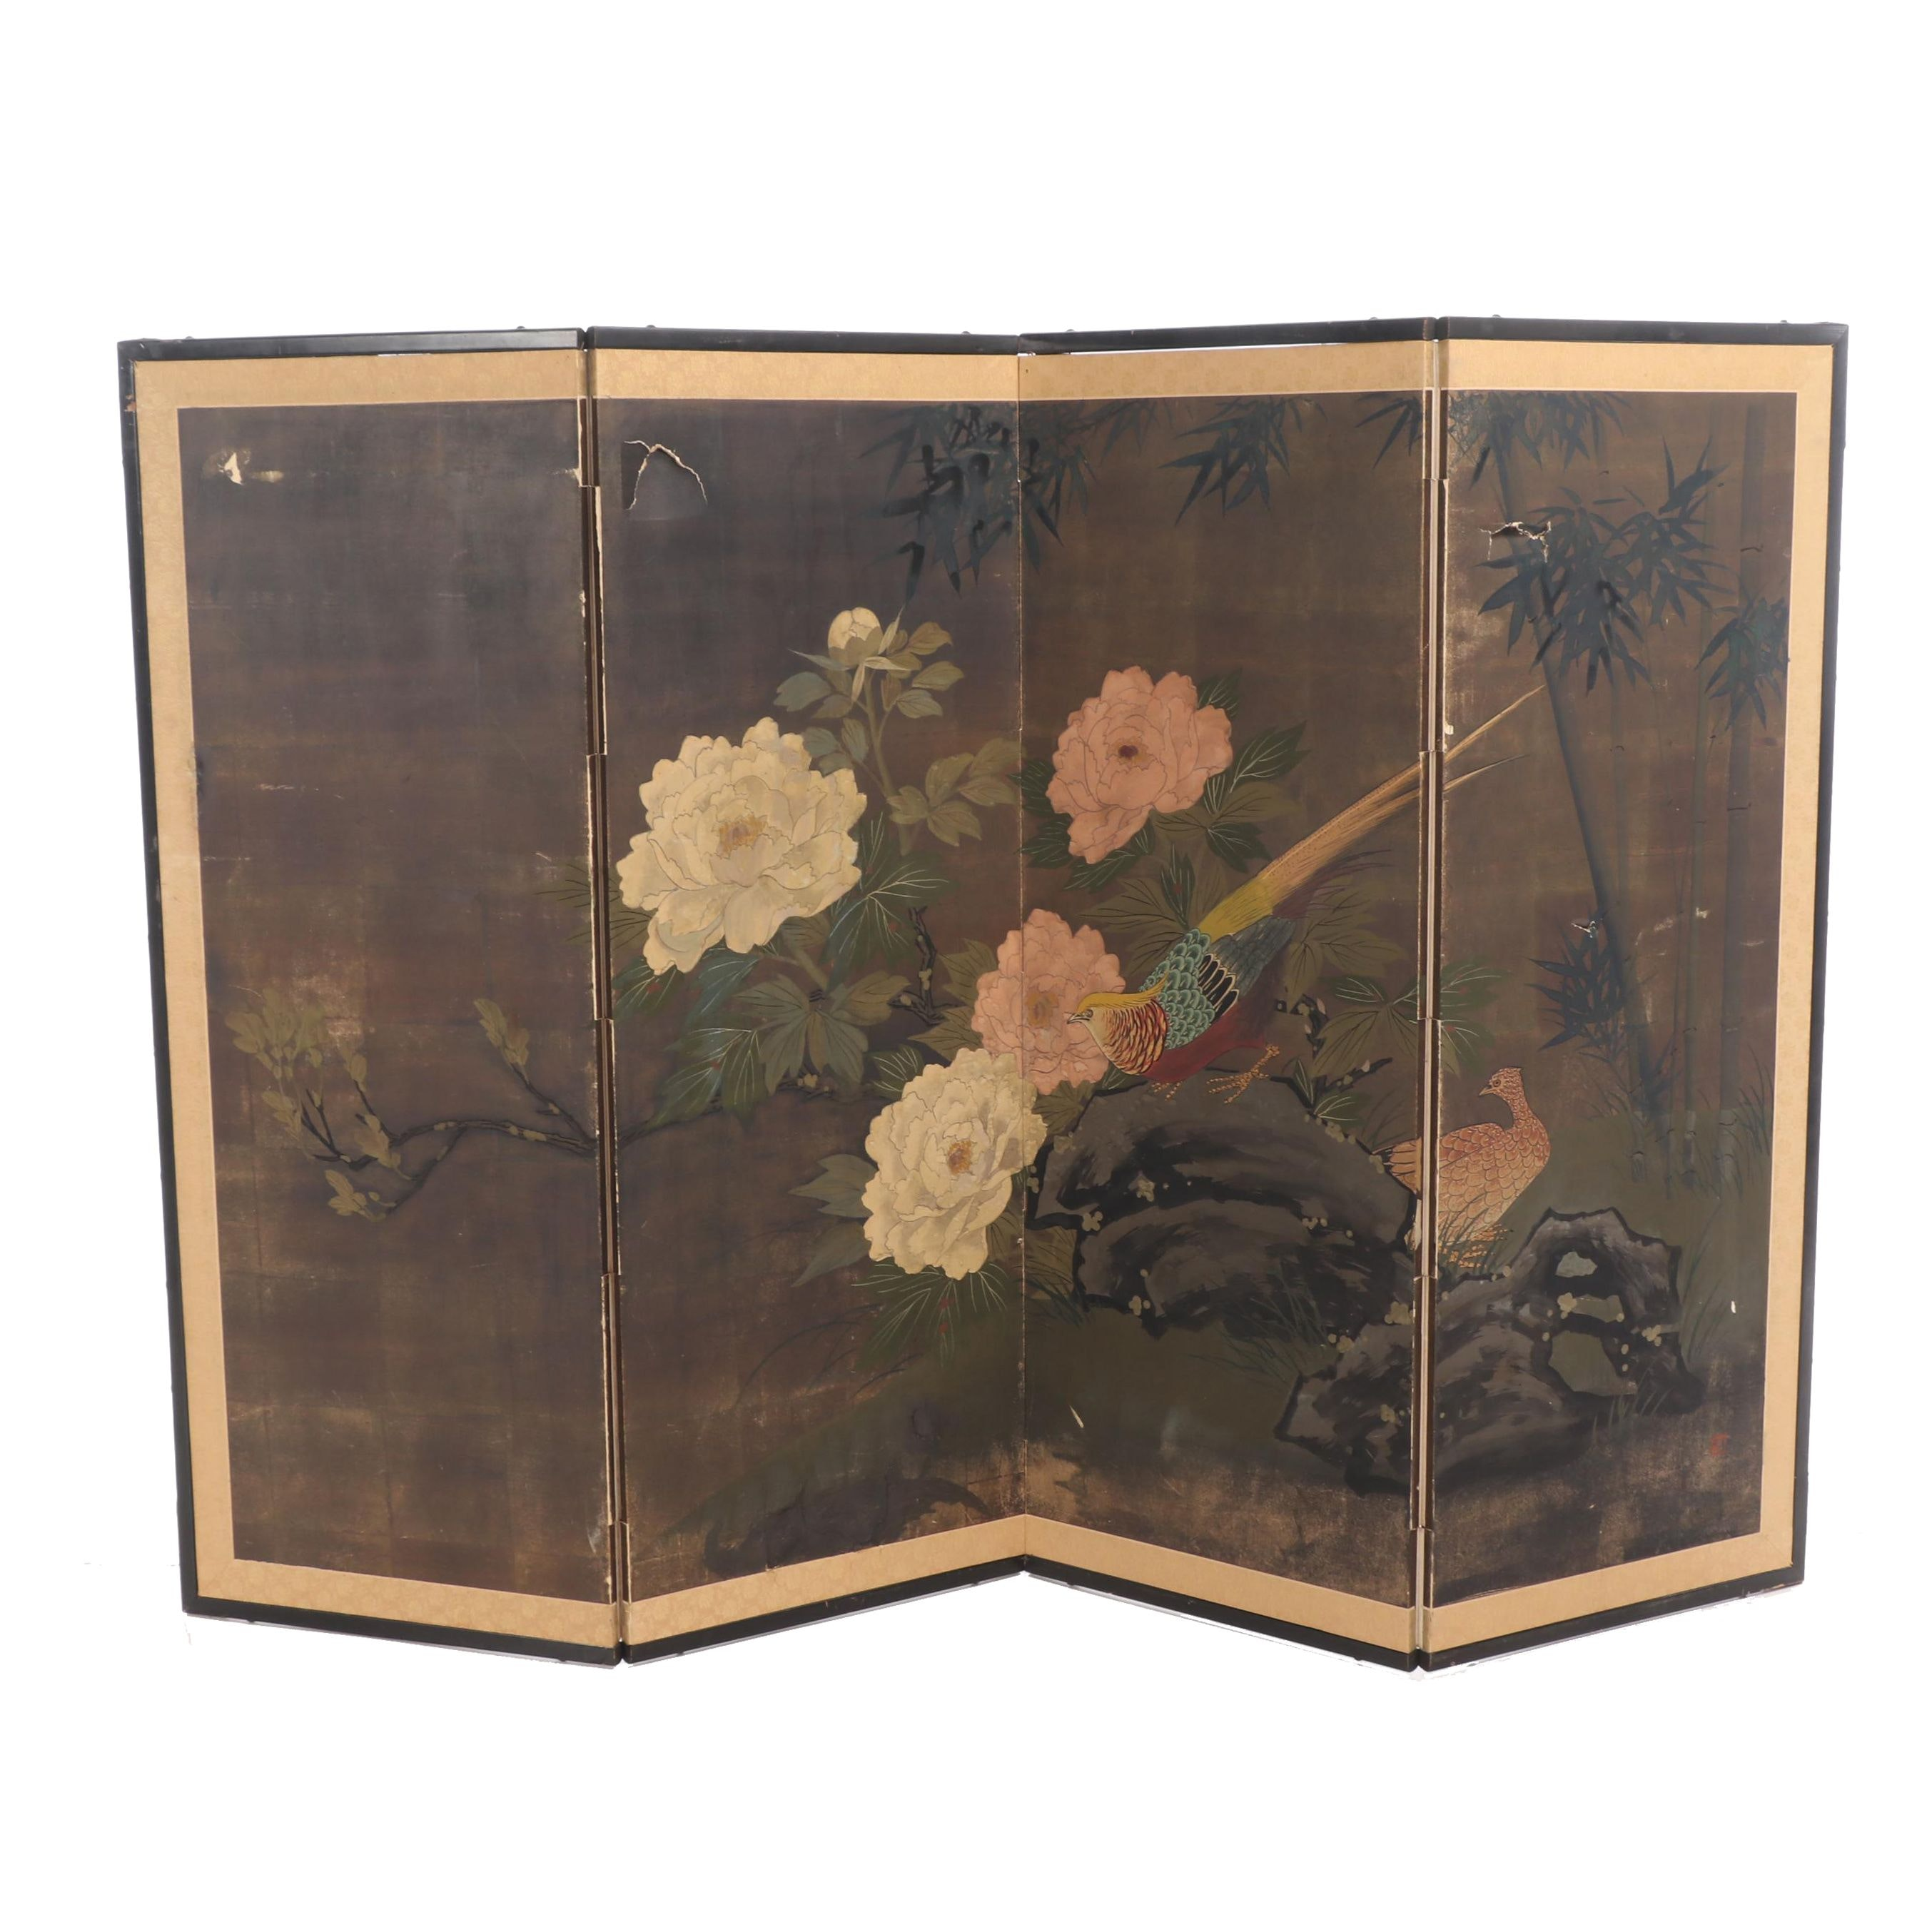 Chinese Hand-Painted Folding Screen with Birds and Flowers